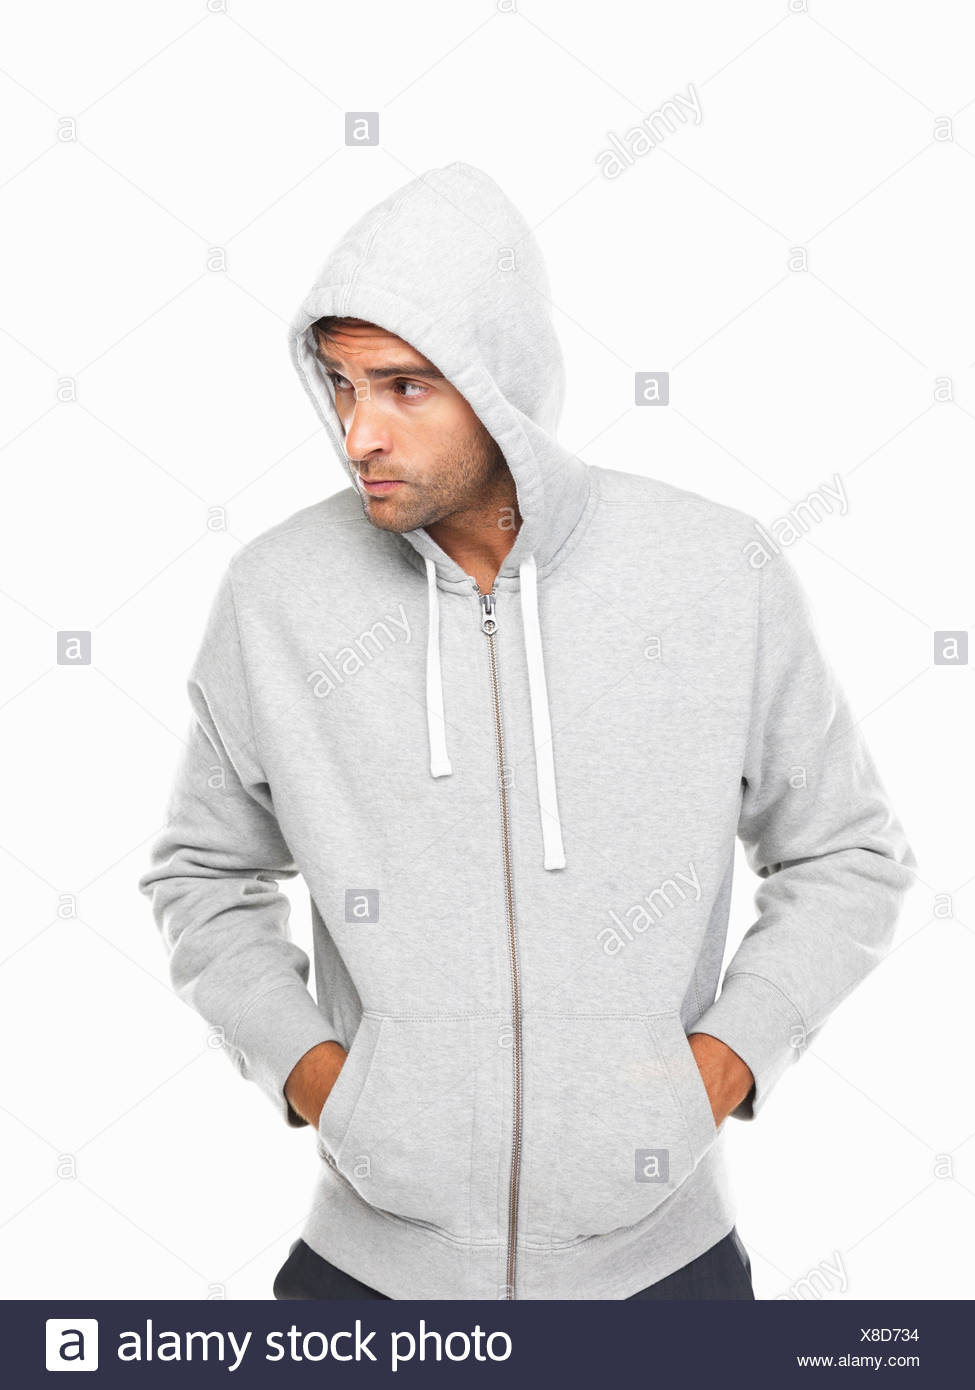 0dae2538 Young man in hoodie standing with hands in pockets Stock Photo ...